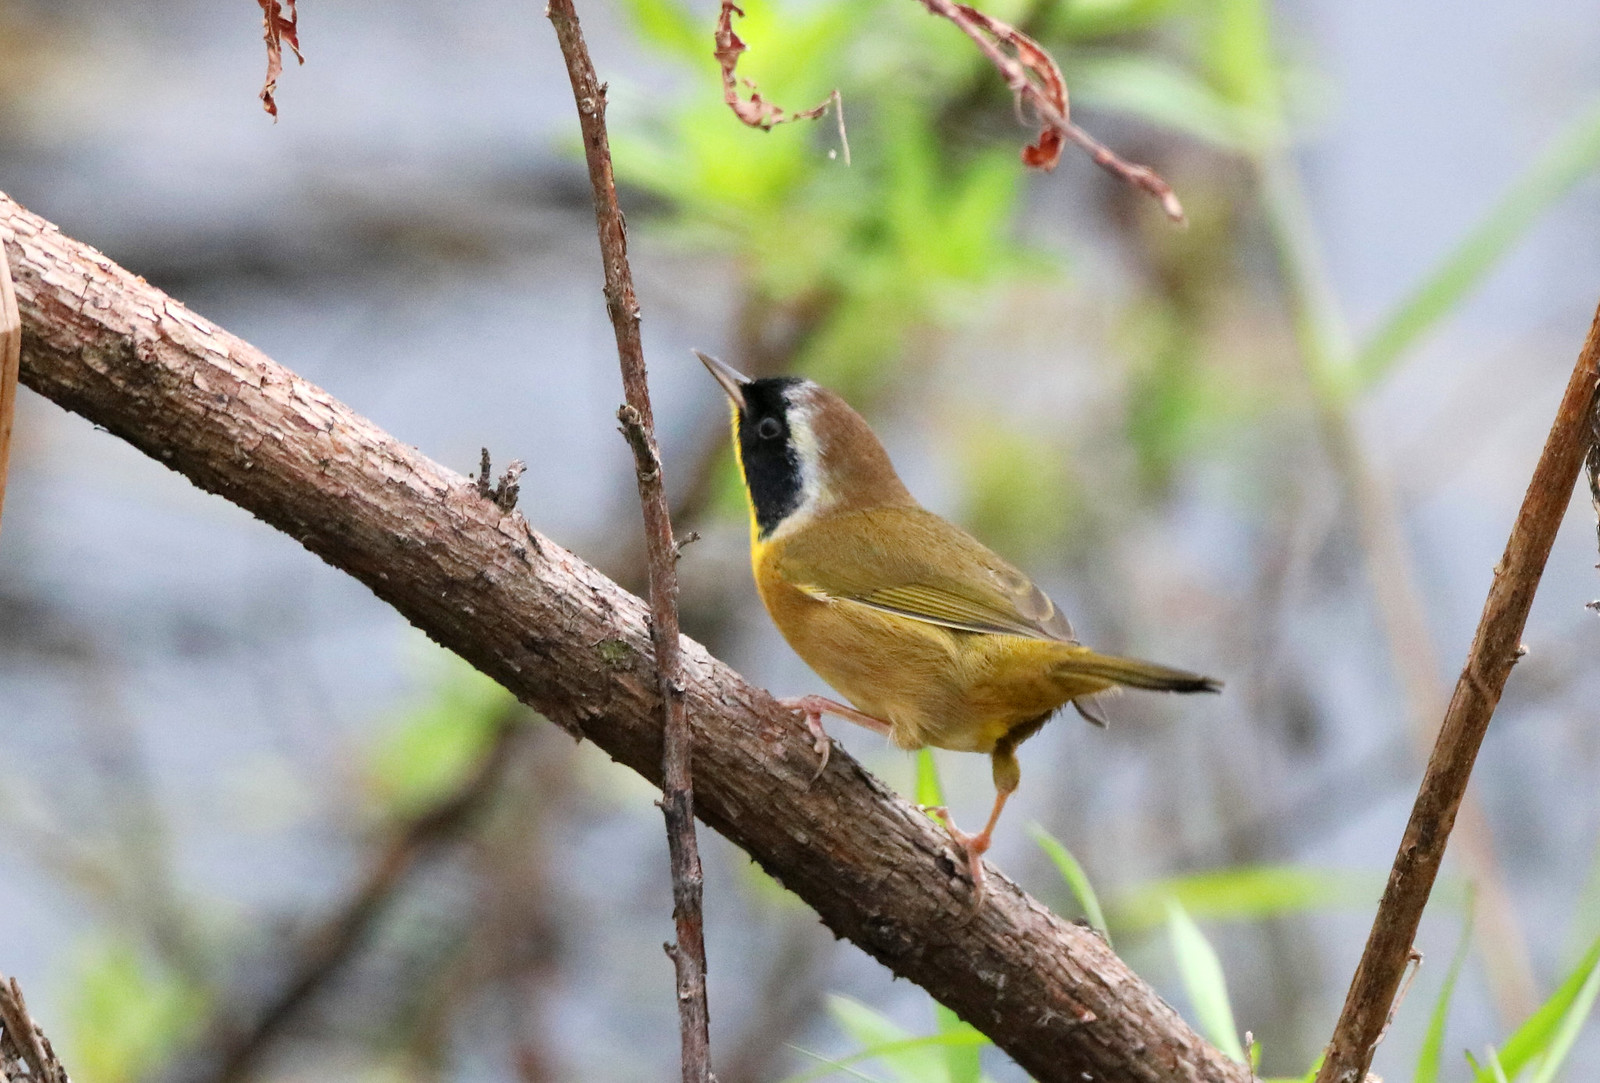 COMMON YELLOWTHROAT @ Circle Bar Reserve, Lakeland, Florida